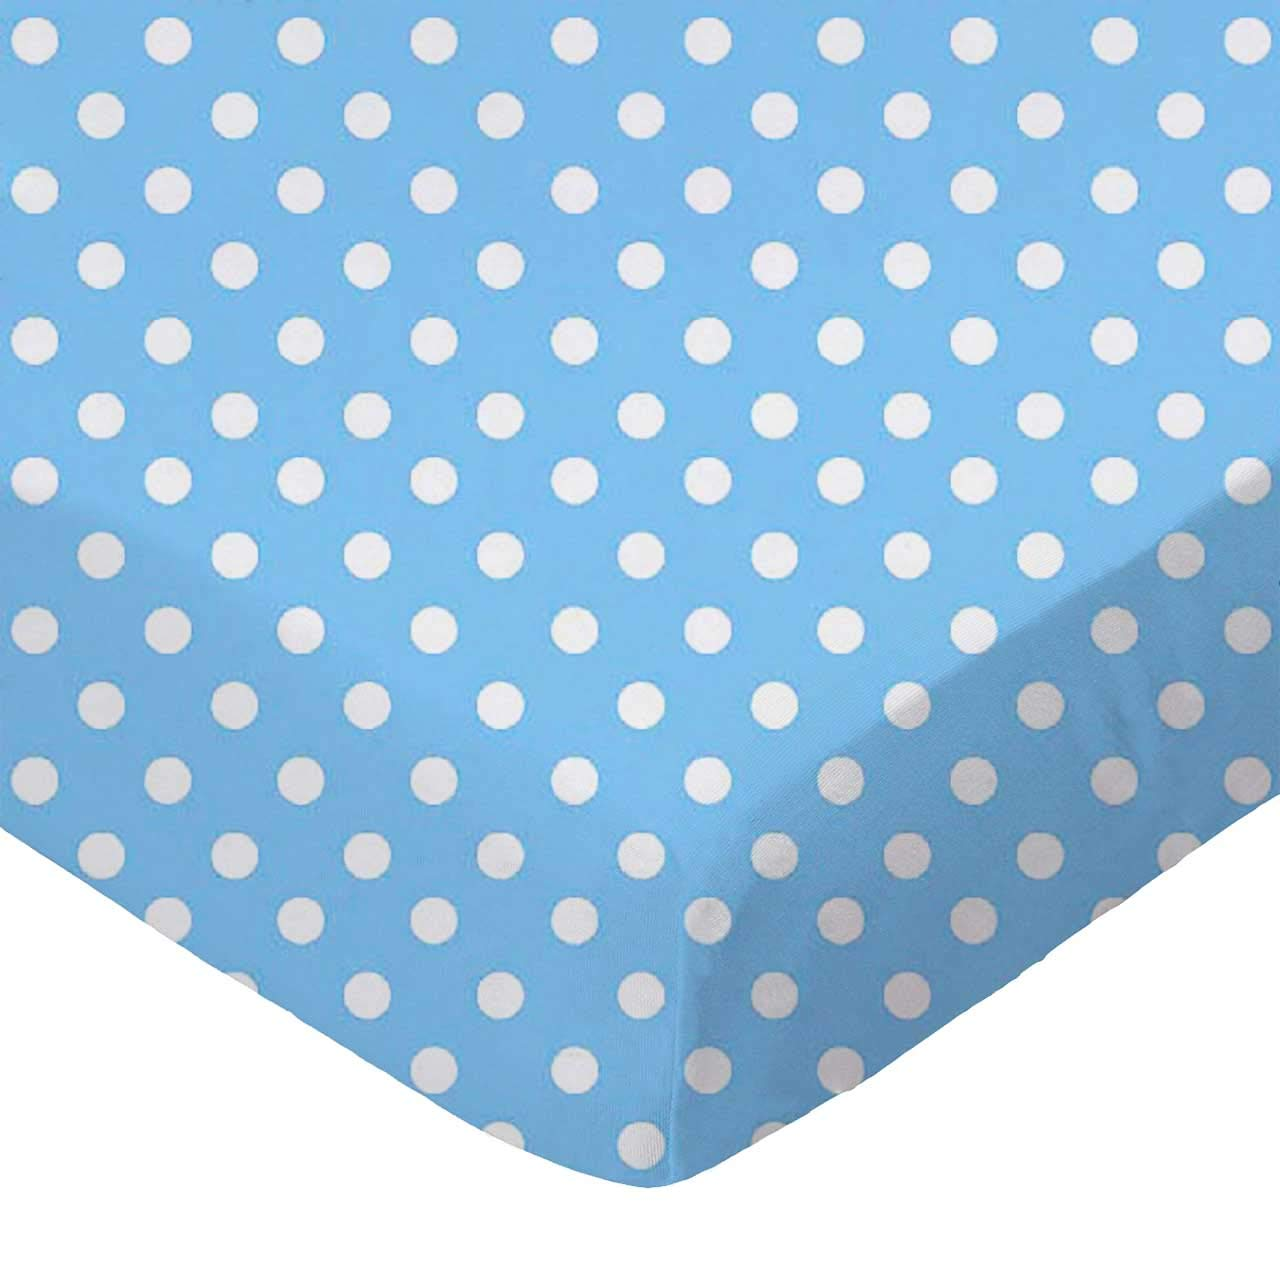 Pindots Grey Woven Made in USA 24 x 38 x 5.5 SheetWorld 100/% Cotton Percale Extra Deep Fitted Portable Mini Crib Sheet